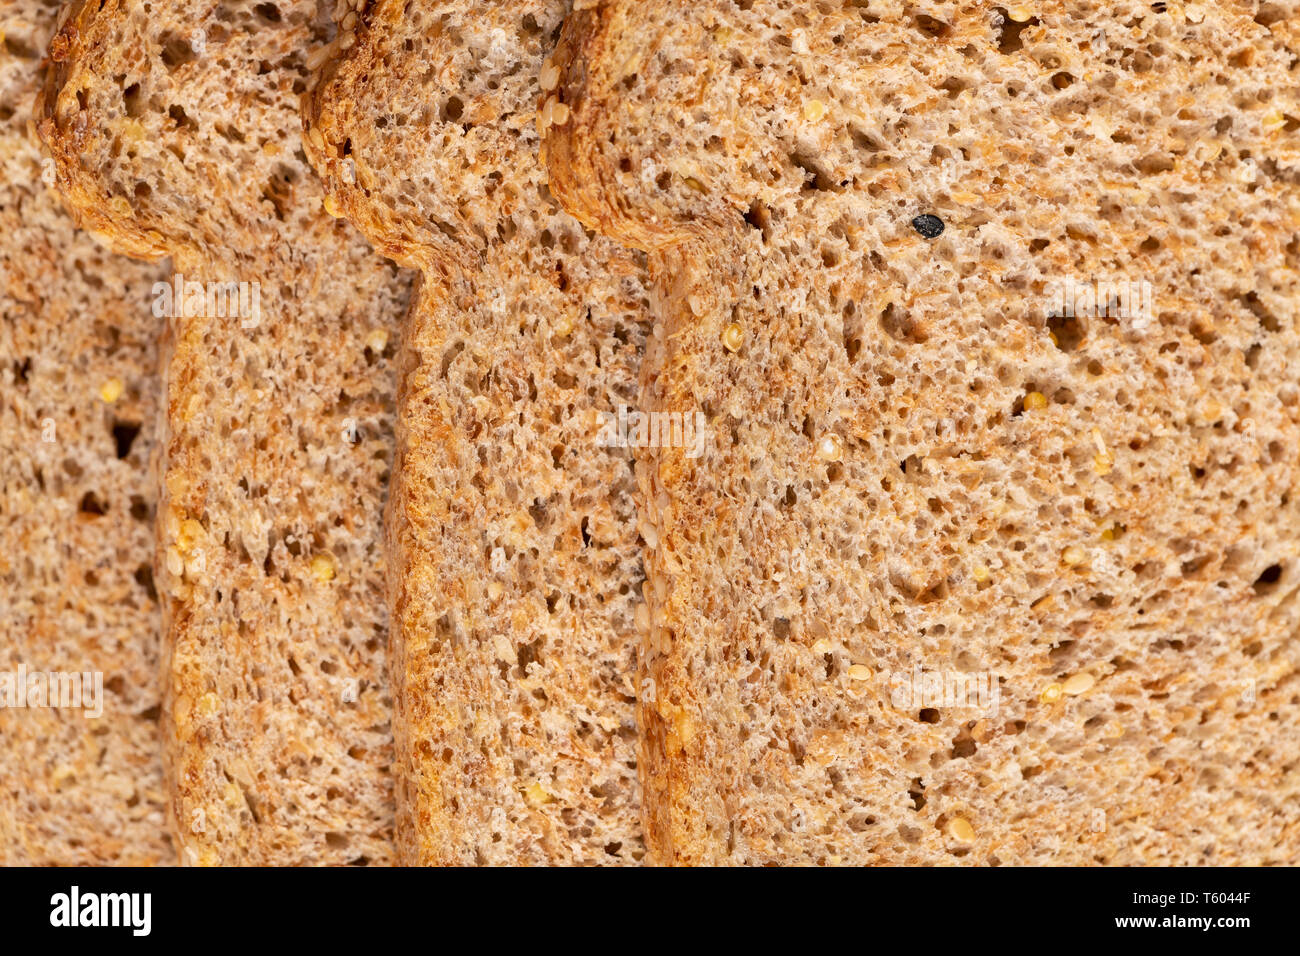 Food texture background of bread made with freshly sprouted organic grains , top view. - Stock Image